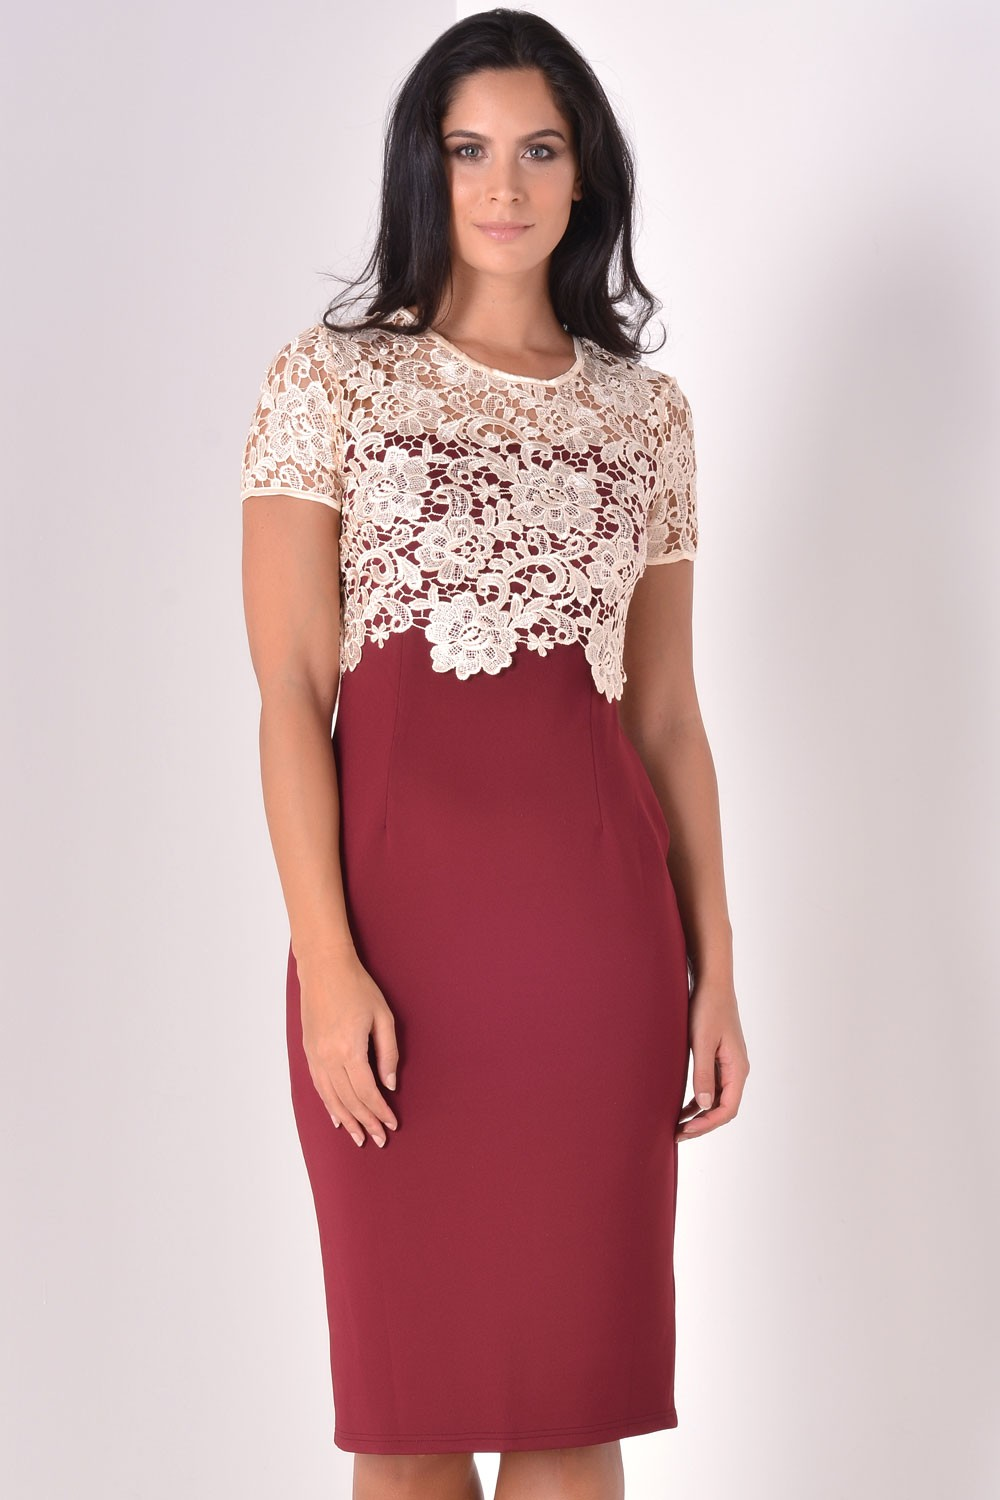 Marc Angelo Blythe Lace Overlay Dress In Wine Iclothing